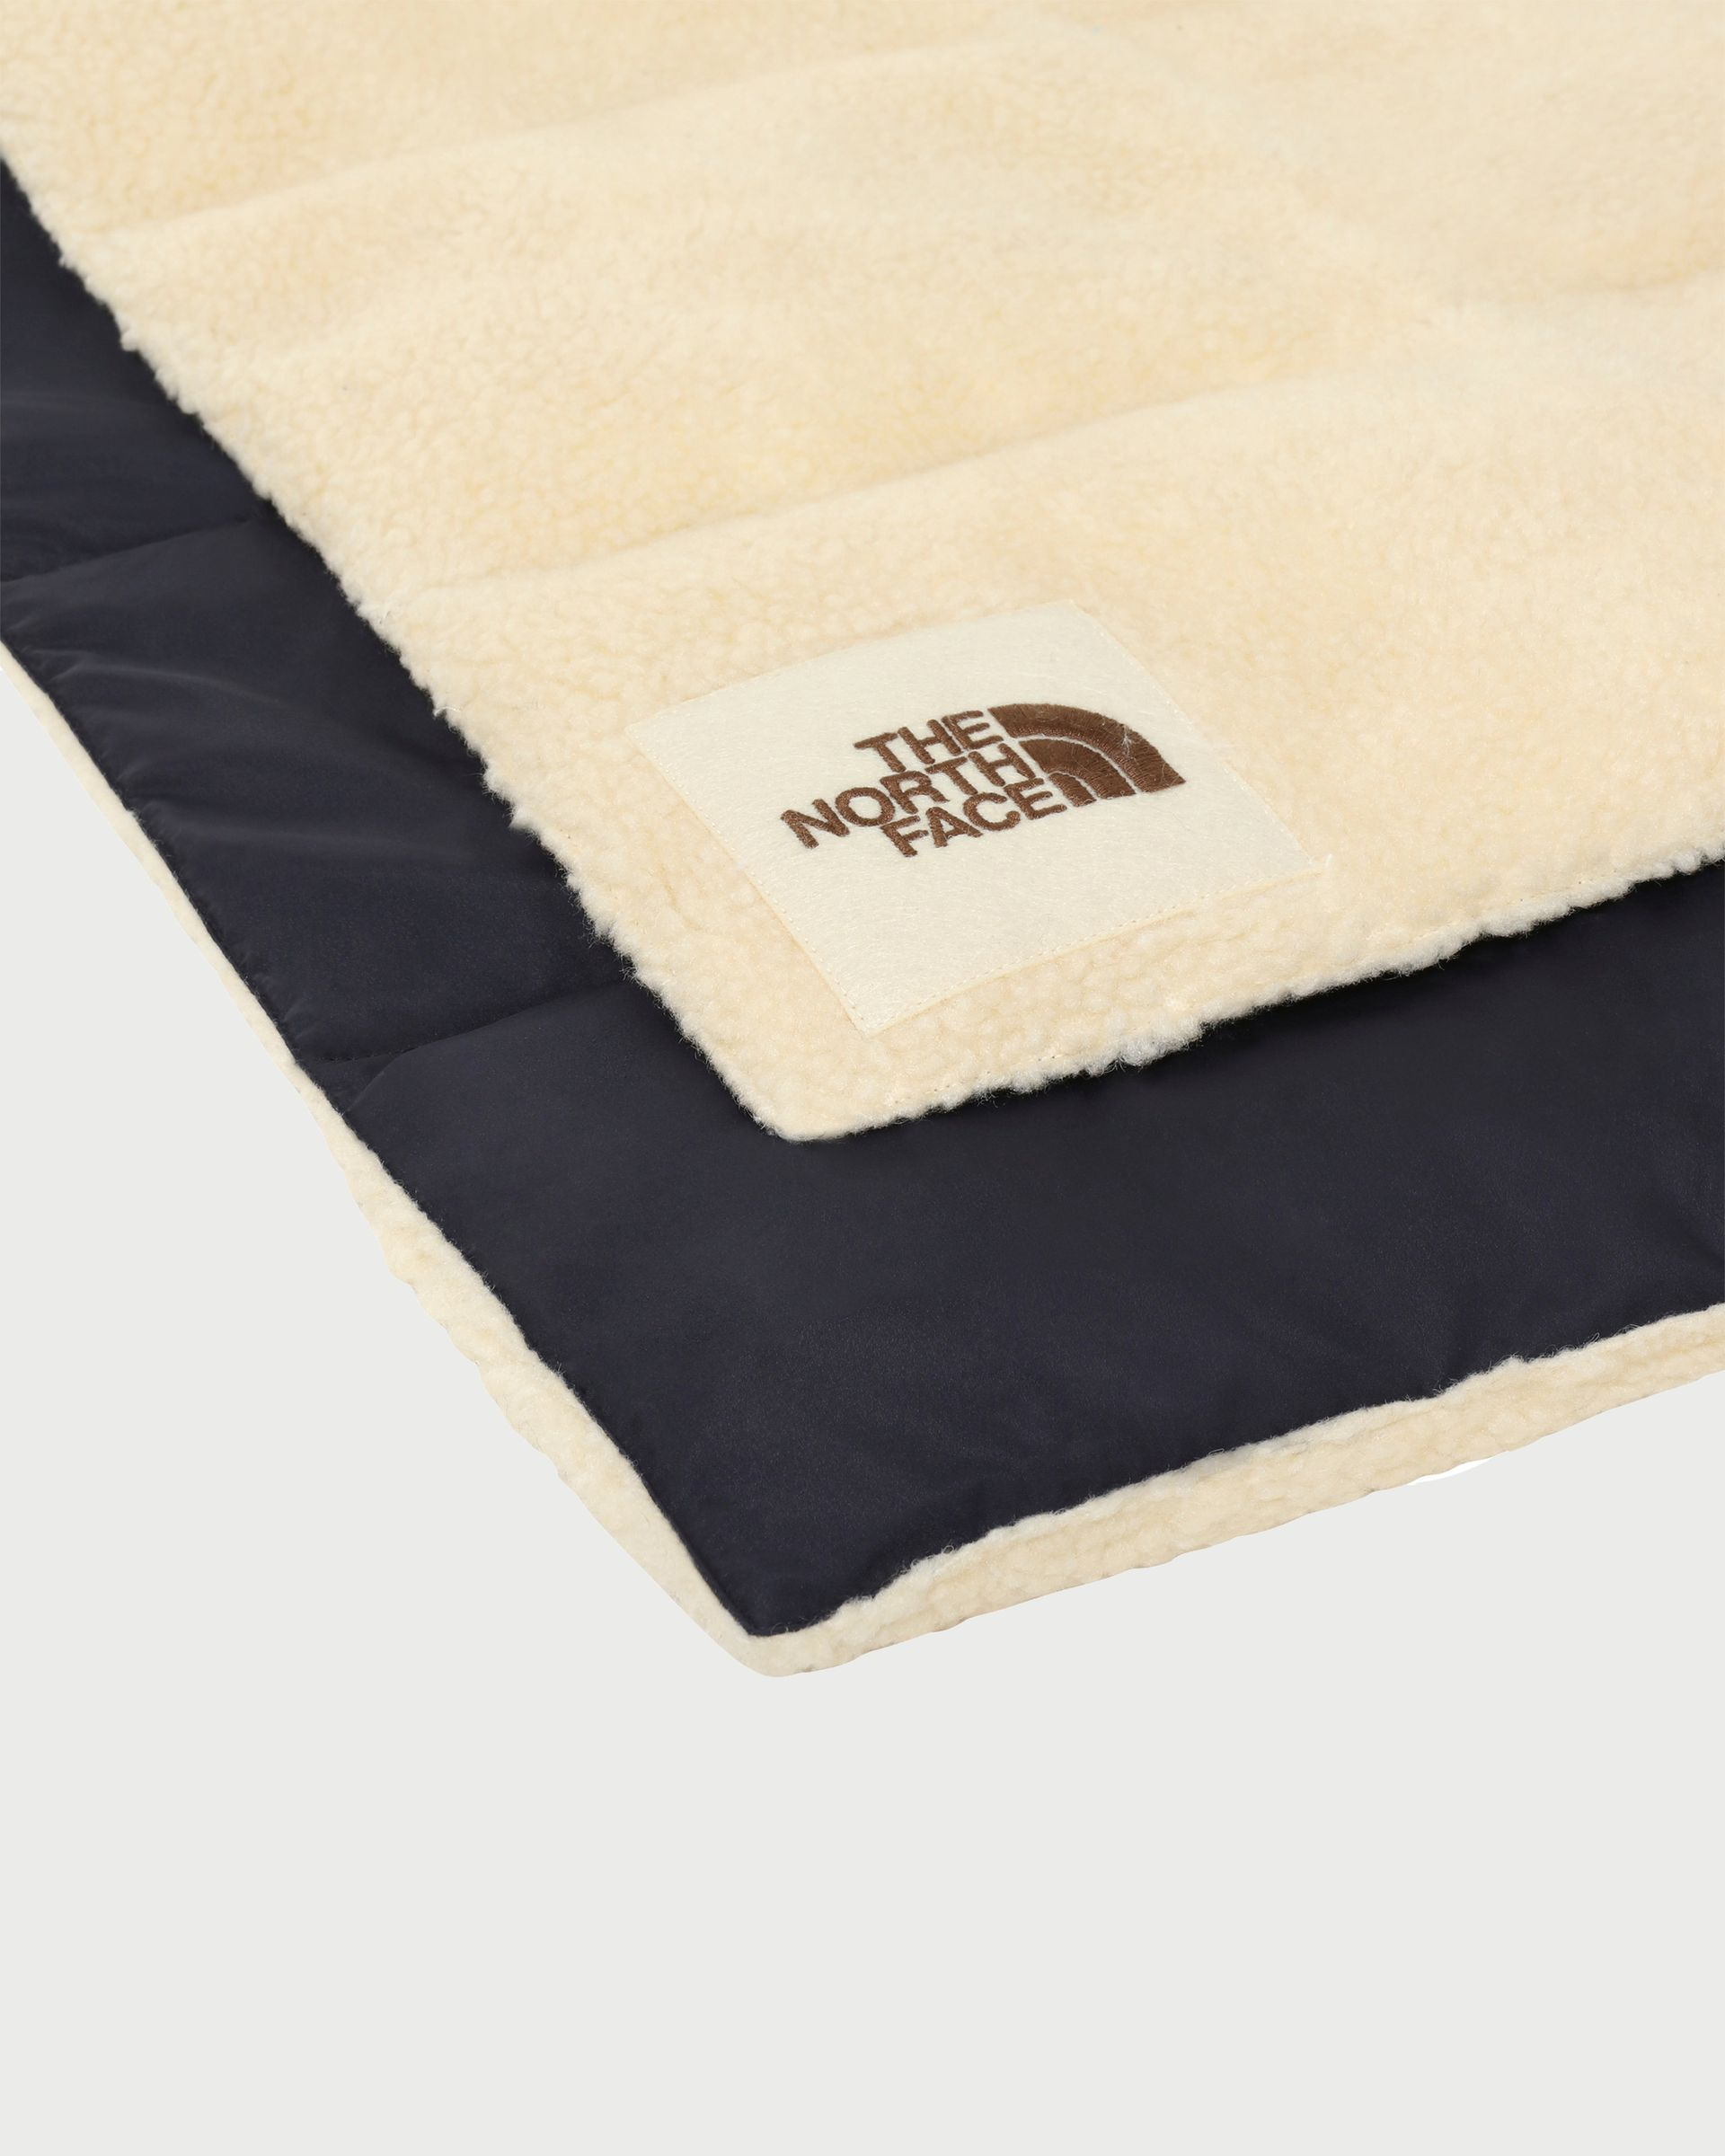 The North Face Brown Label - Insulated Scarf Bleached Sand Unisex - Image 2